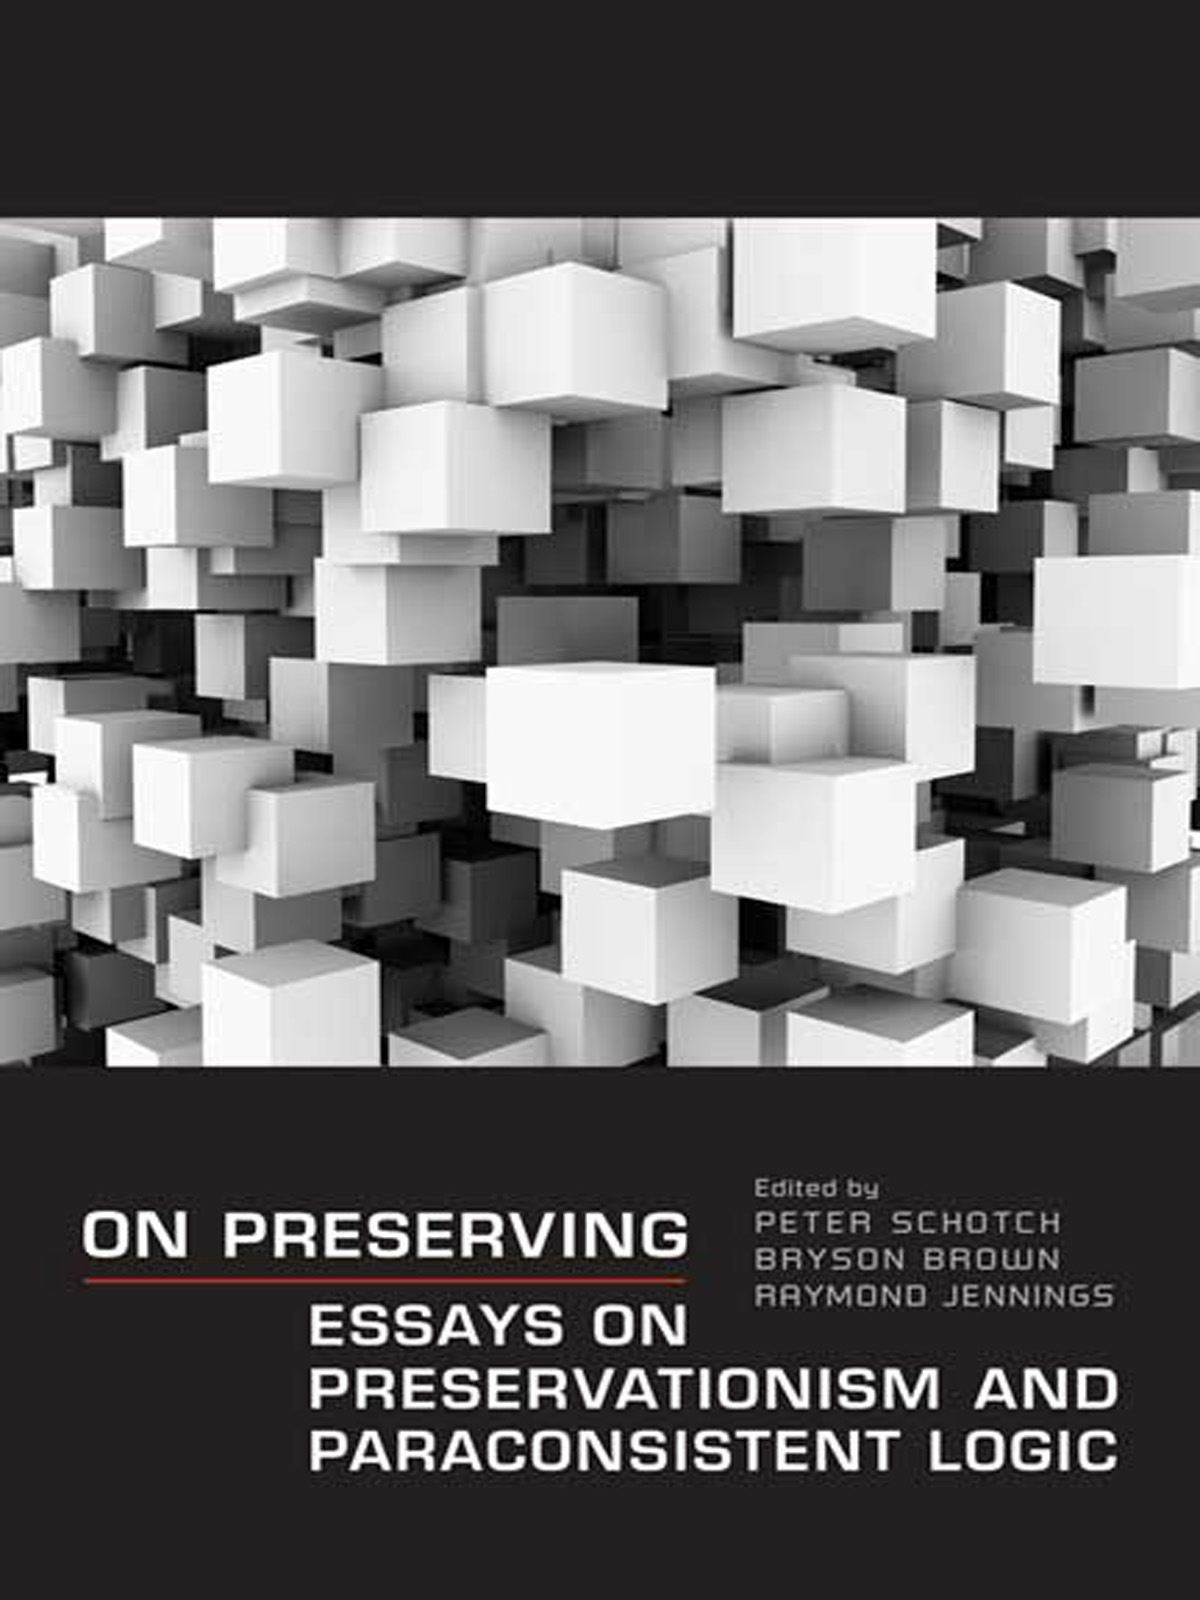 On Preserving By: Bryson Brown,Peter Schotch,Raymond Jennings